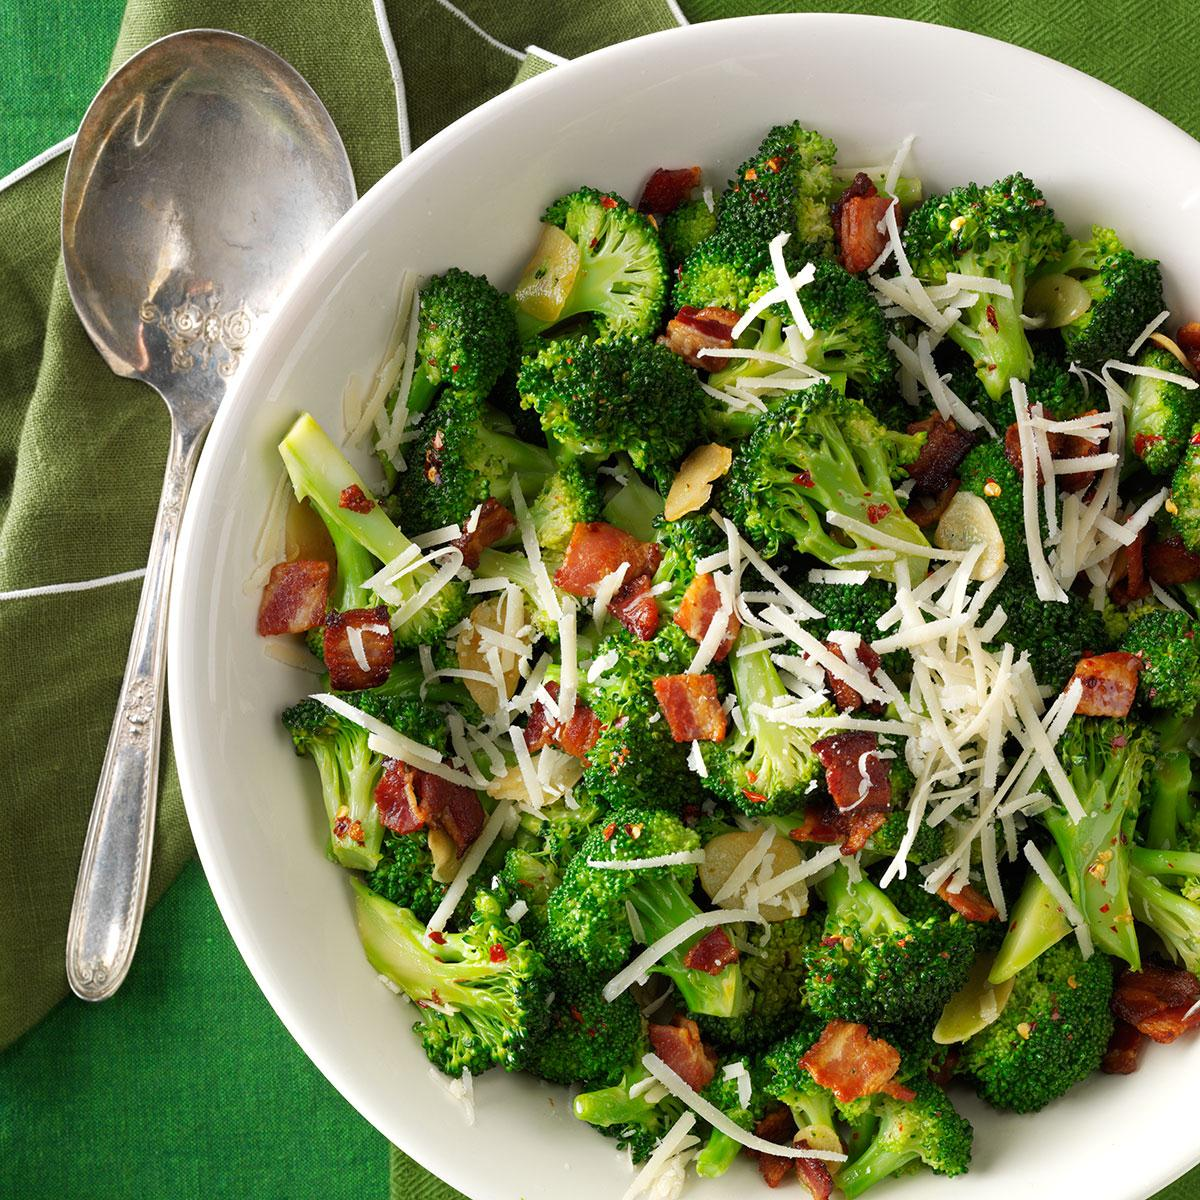 Broccoli With Garlic Bacon Parmesan Recipe How To Make It Taste Of Home